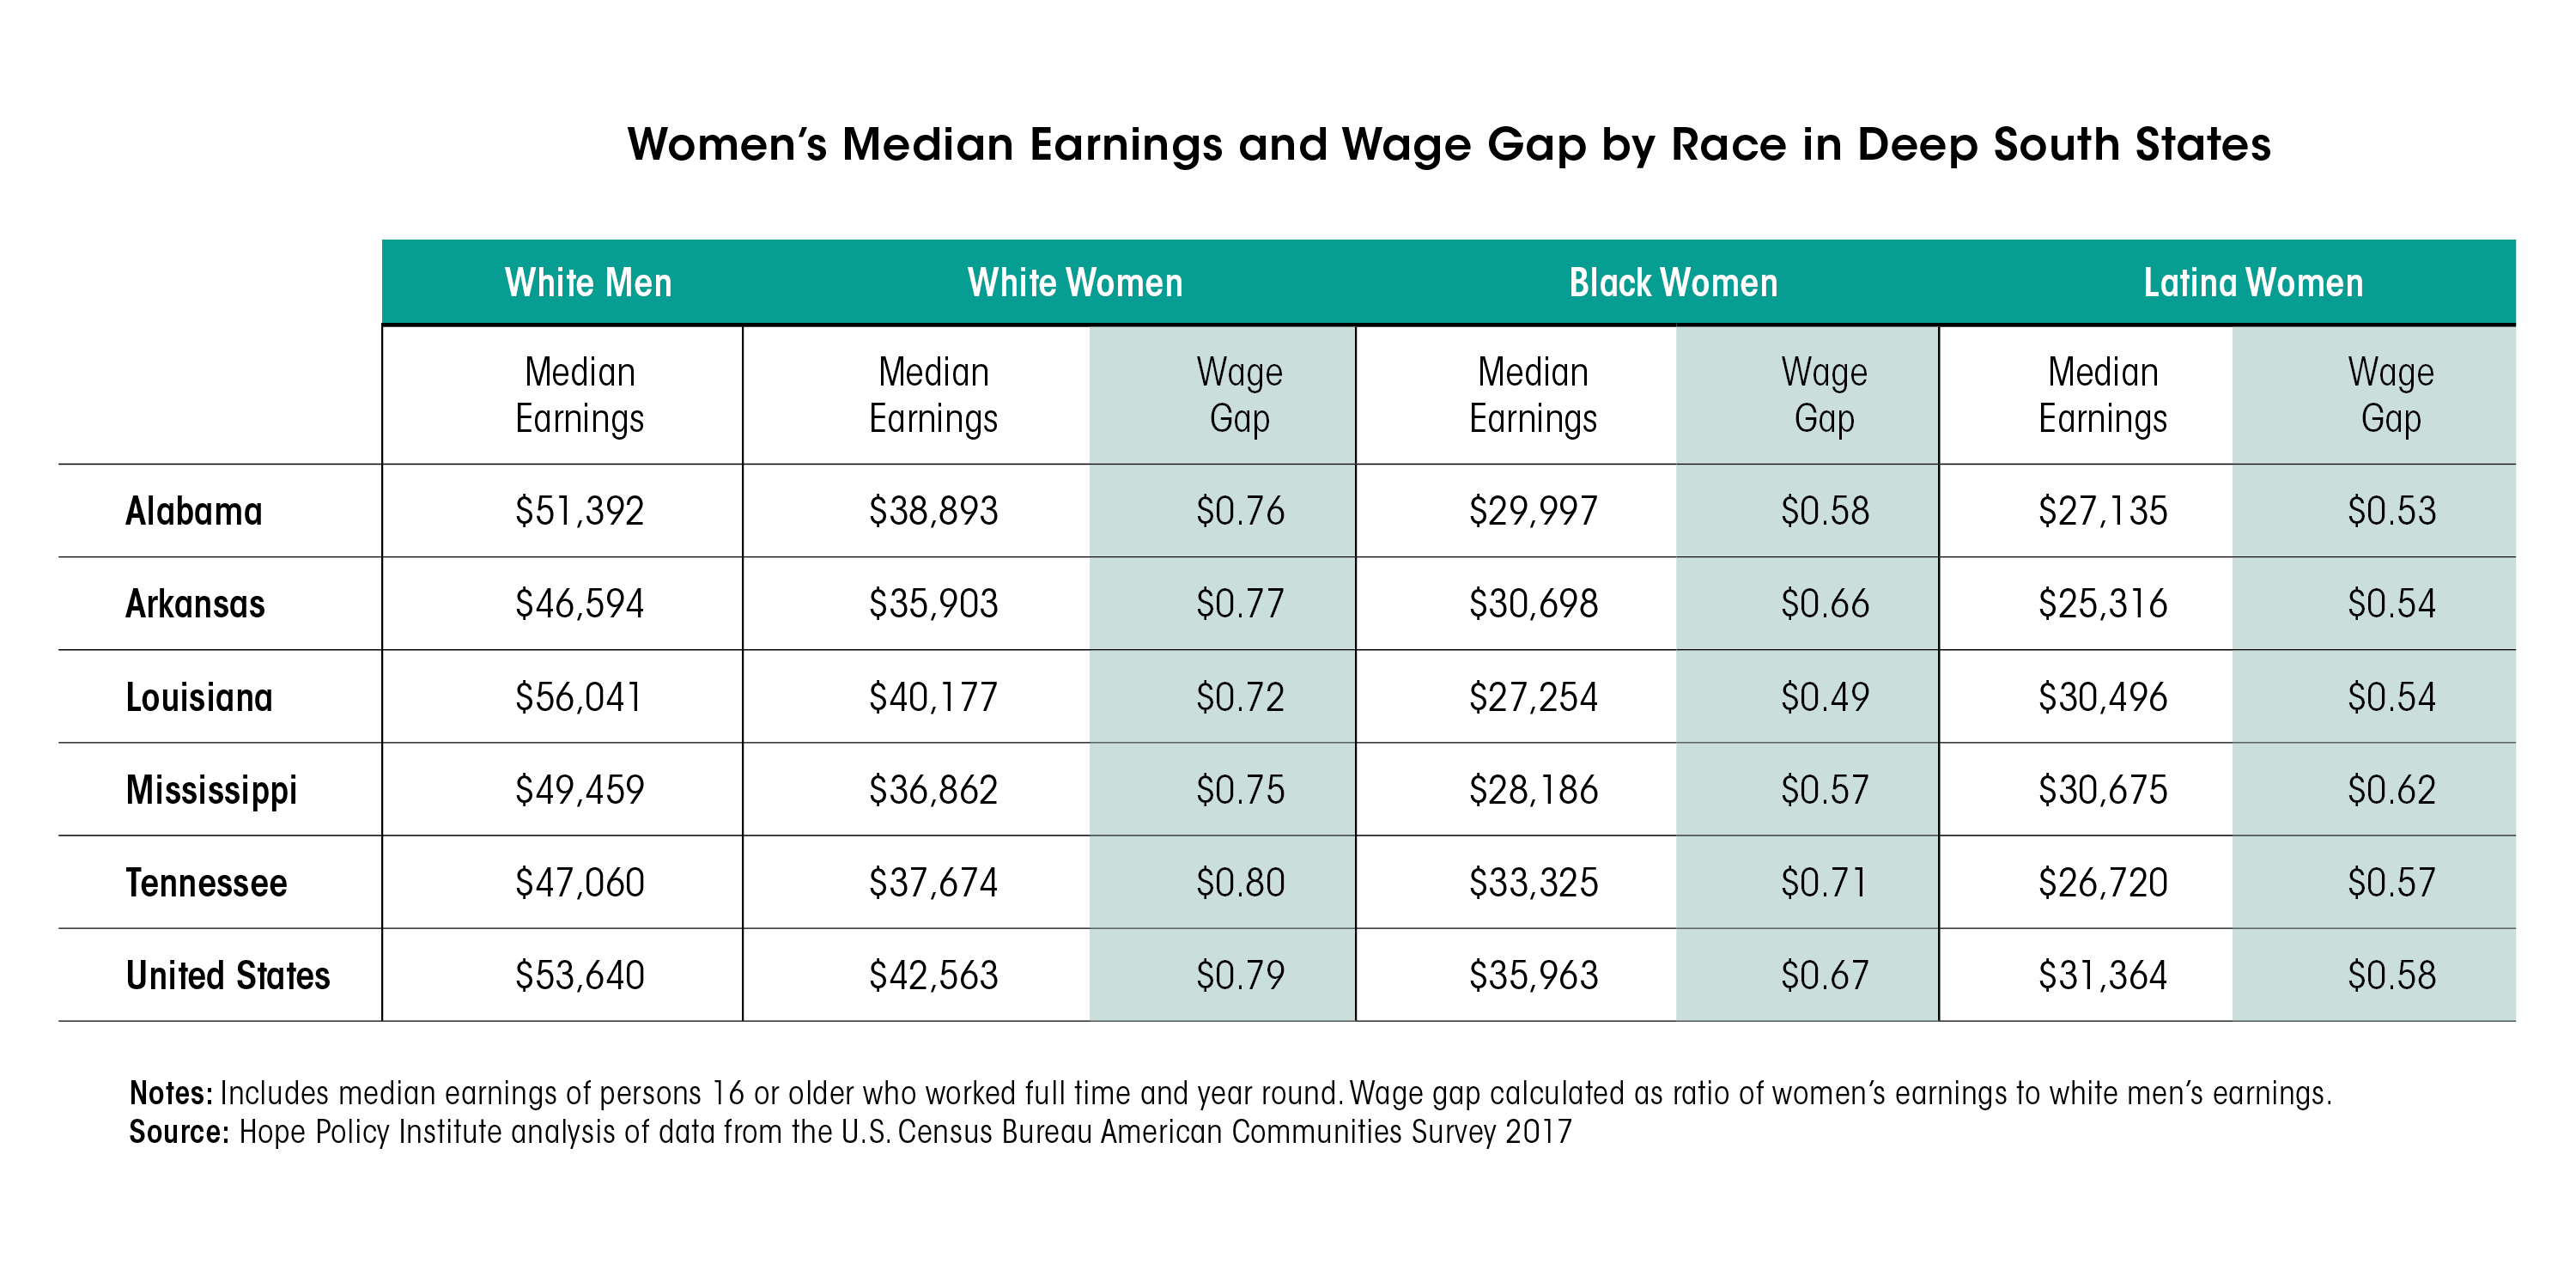 Women earnings and wage in the deep south table